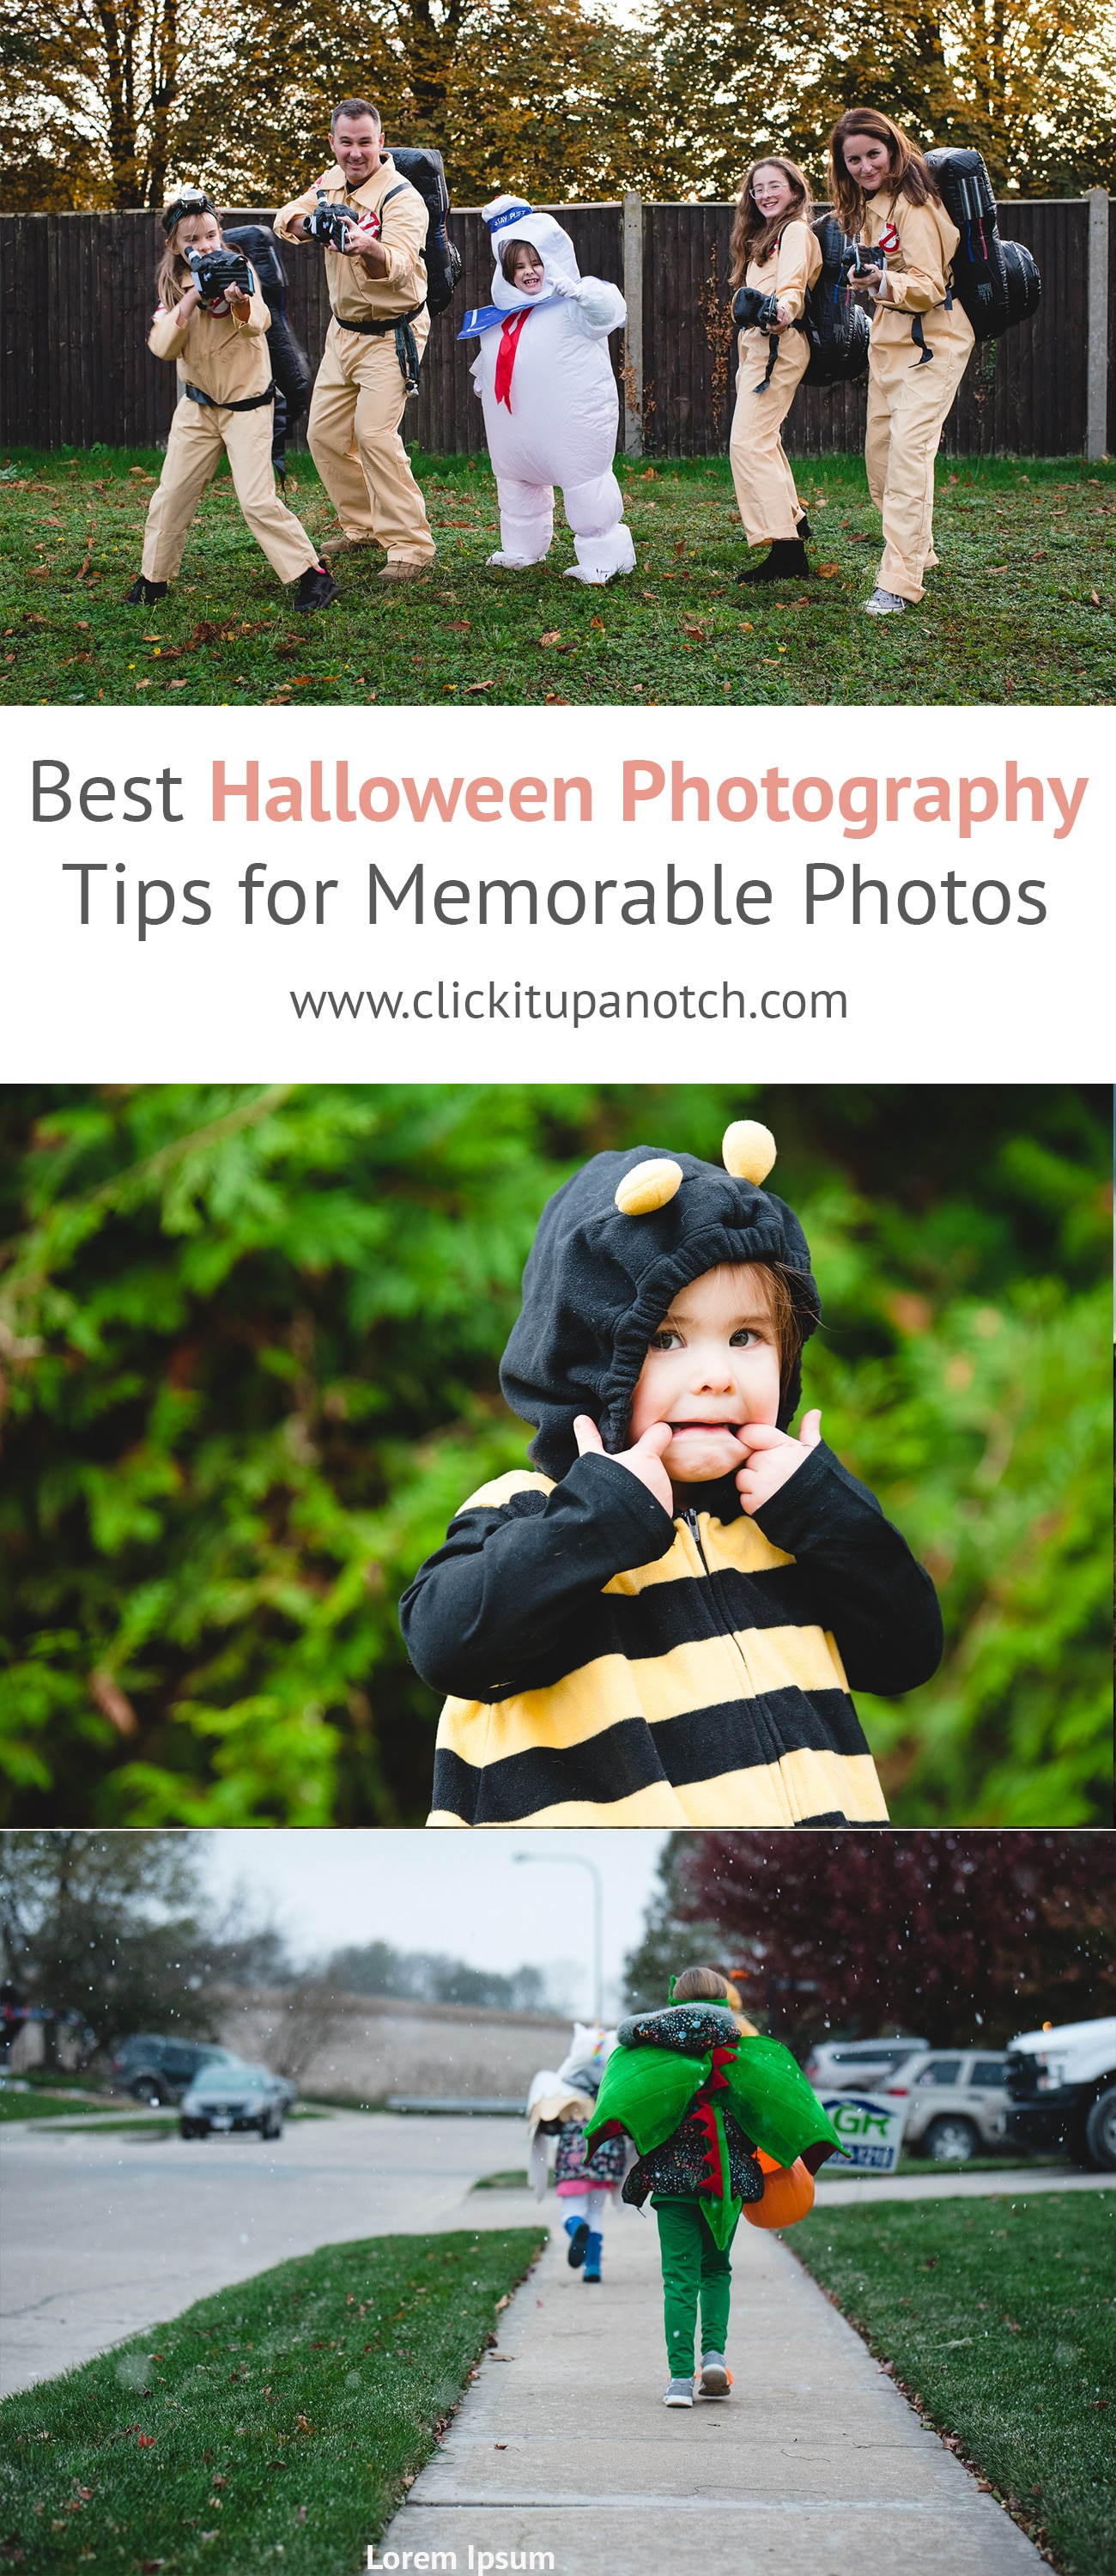 Best Halloween Photography Tips for Memorable Photos